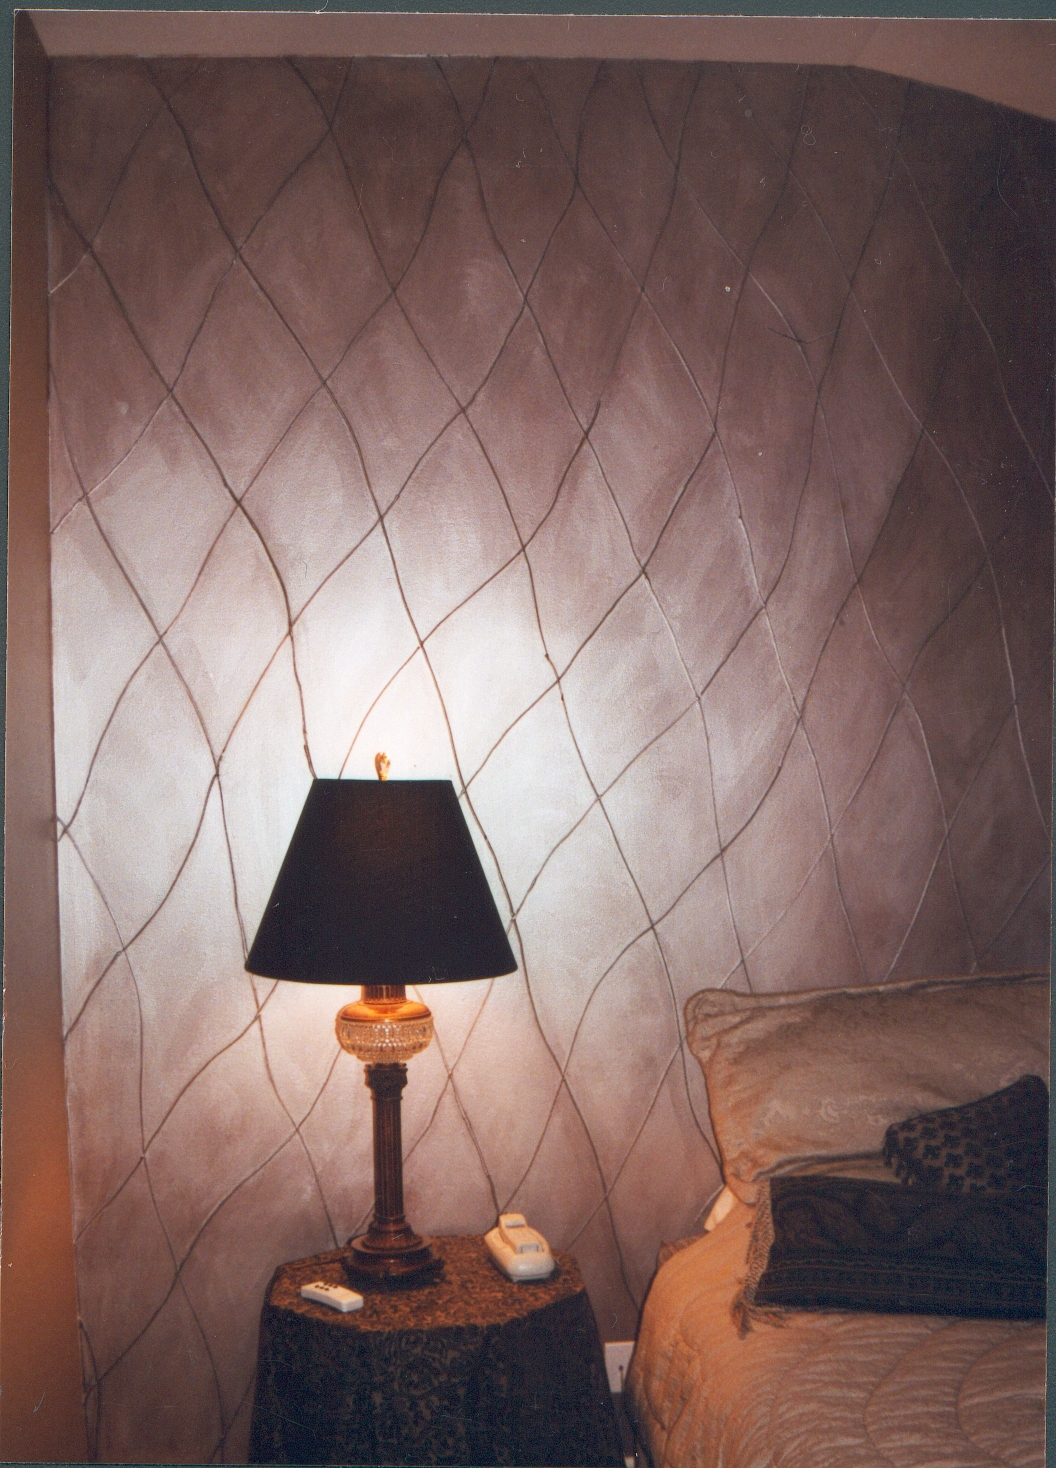 scala stucco + reflet (1)